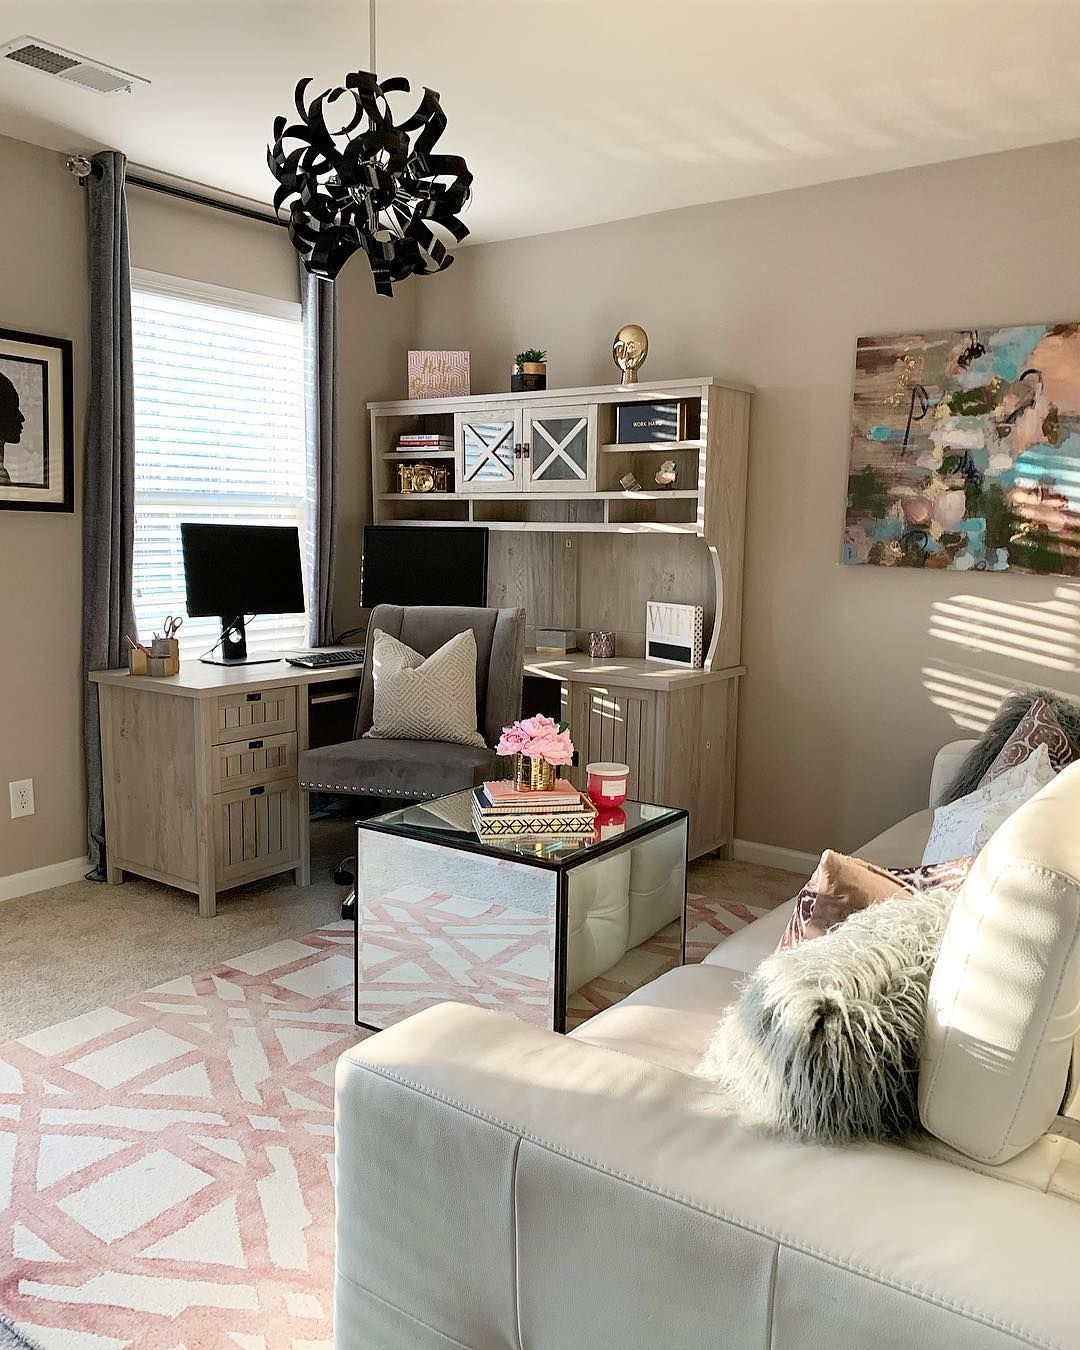 Ashleigh Spencer On Instagram Swipe To See The Before Of The Boss Lady Office Project We Turned Thi Home Office Bedroom Cozy Home Office Lounge Areas #office #and #living #room